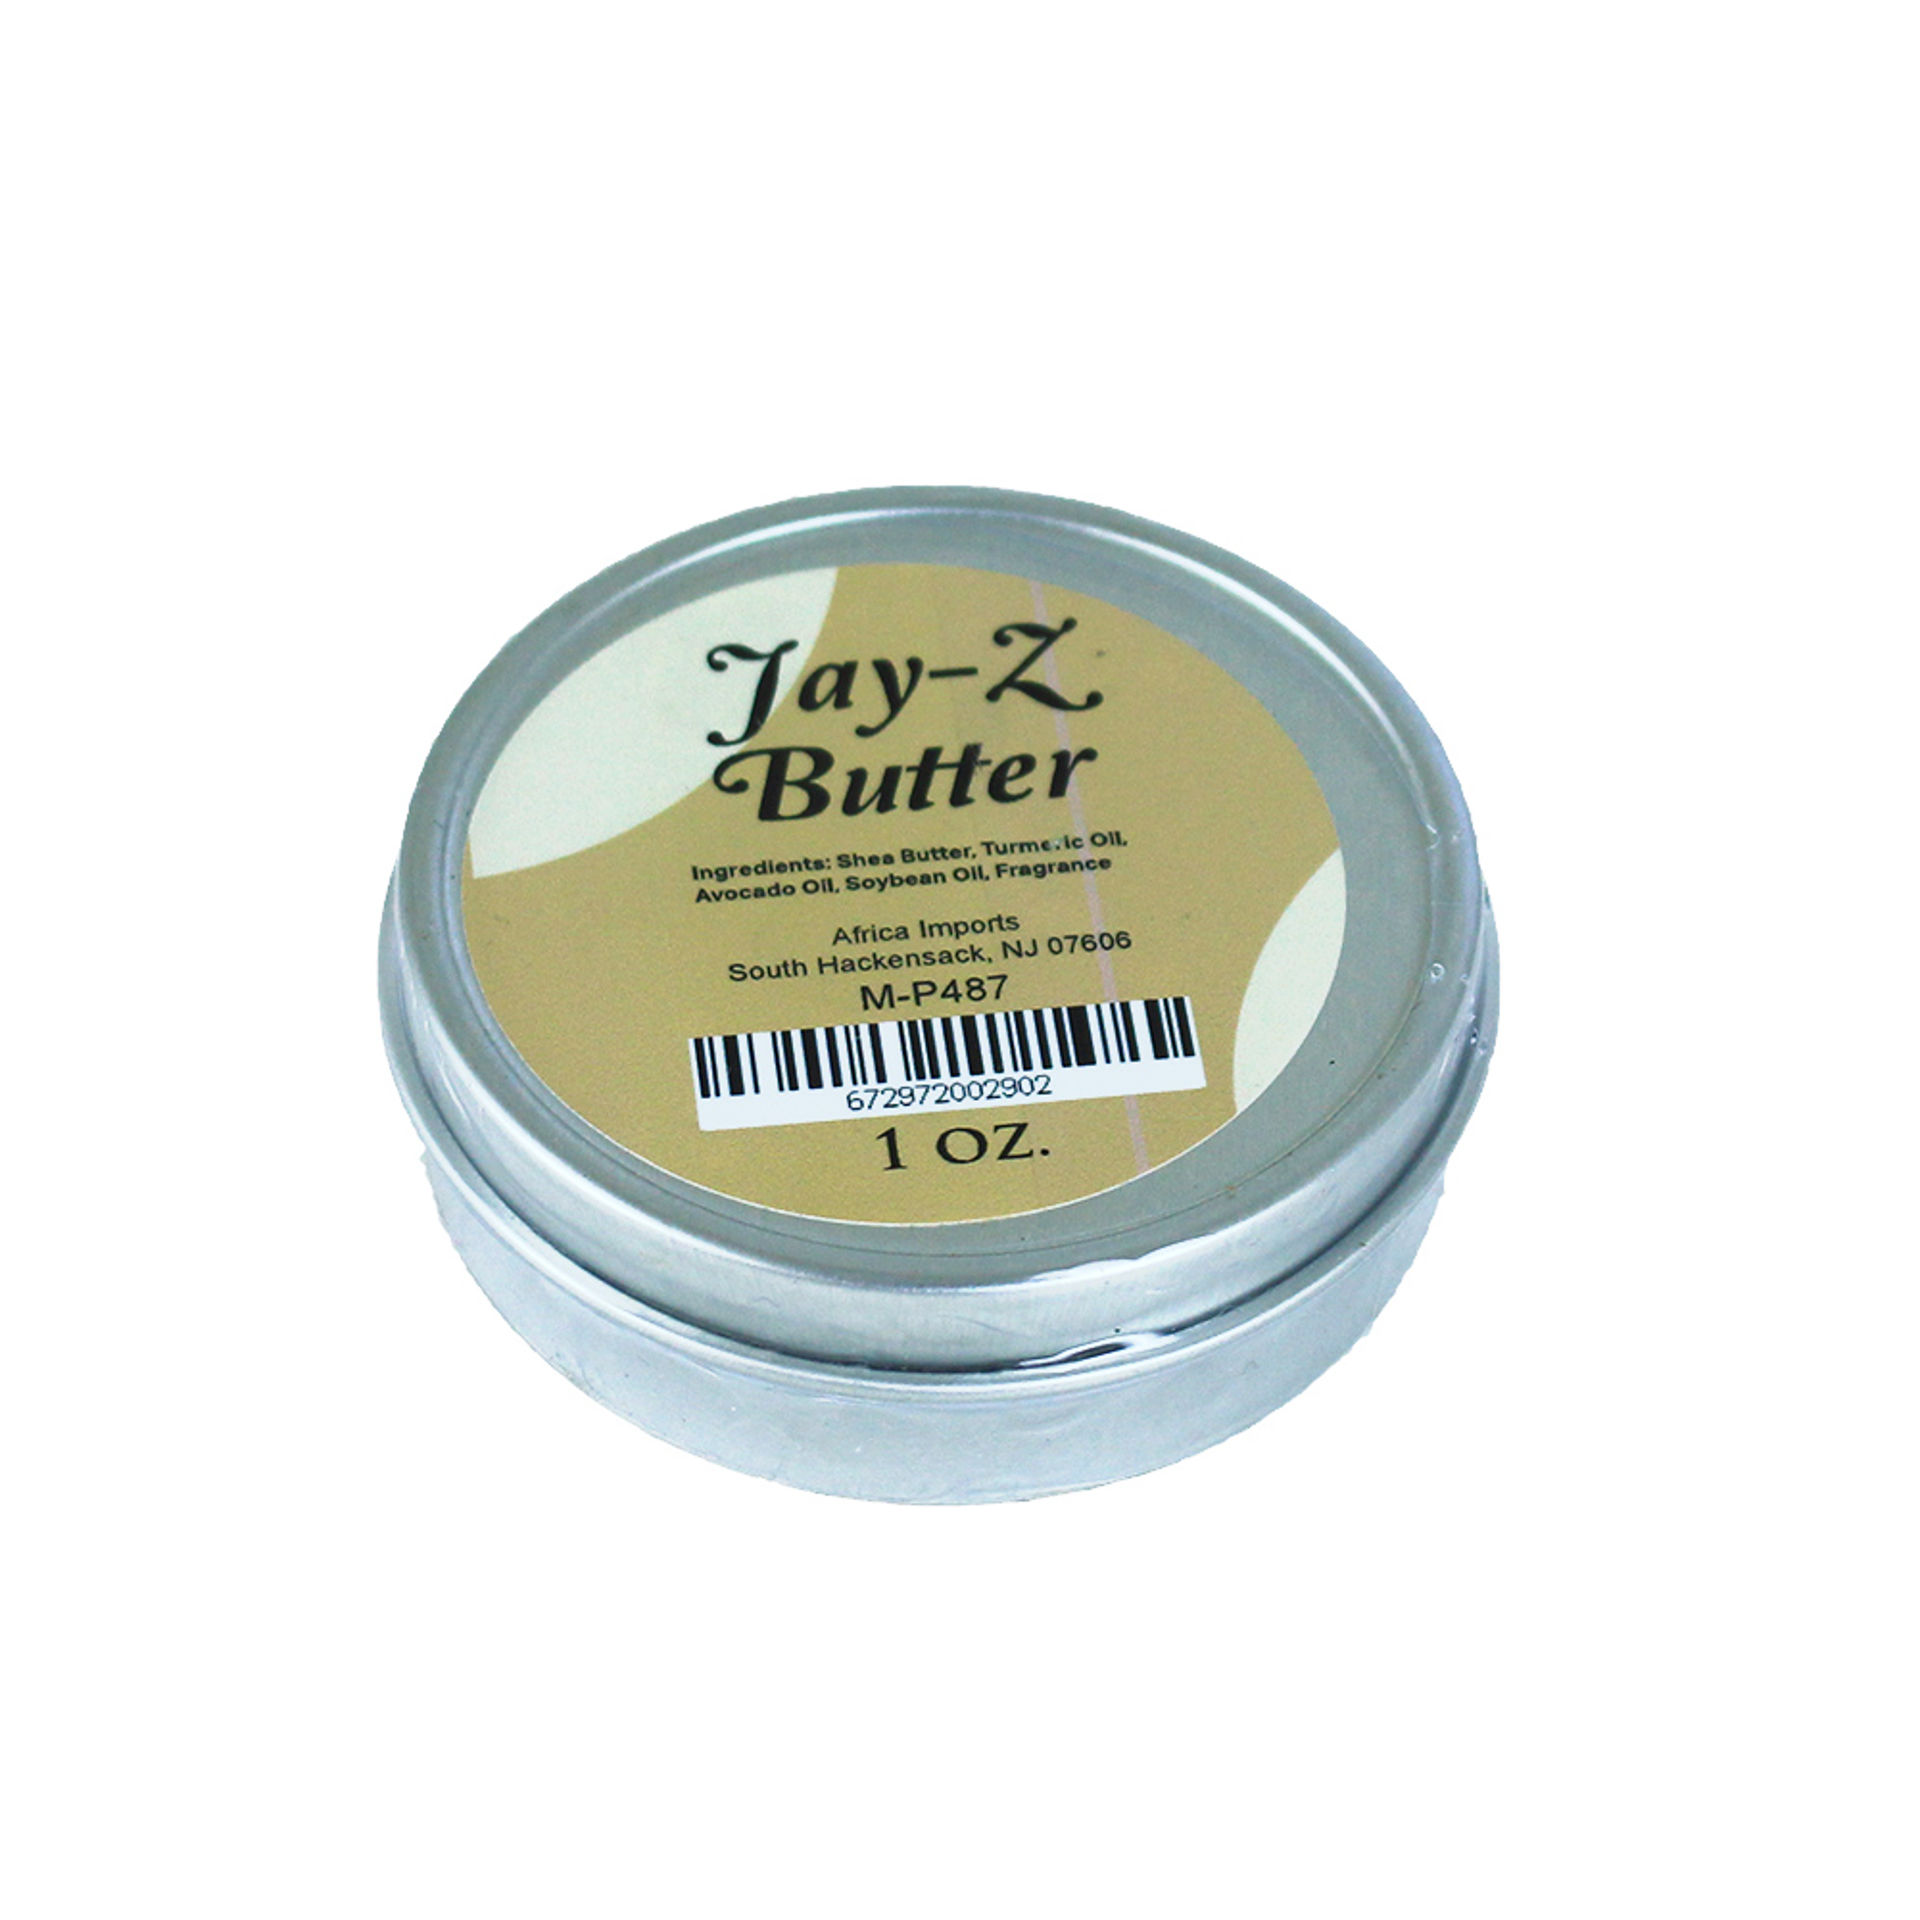 Picture of Jay-Z Butter - 1 oz.